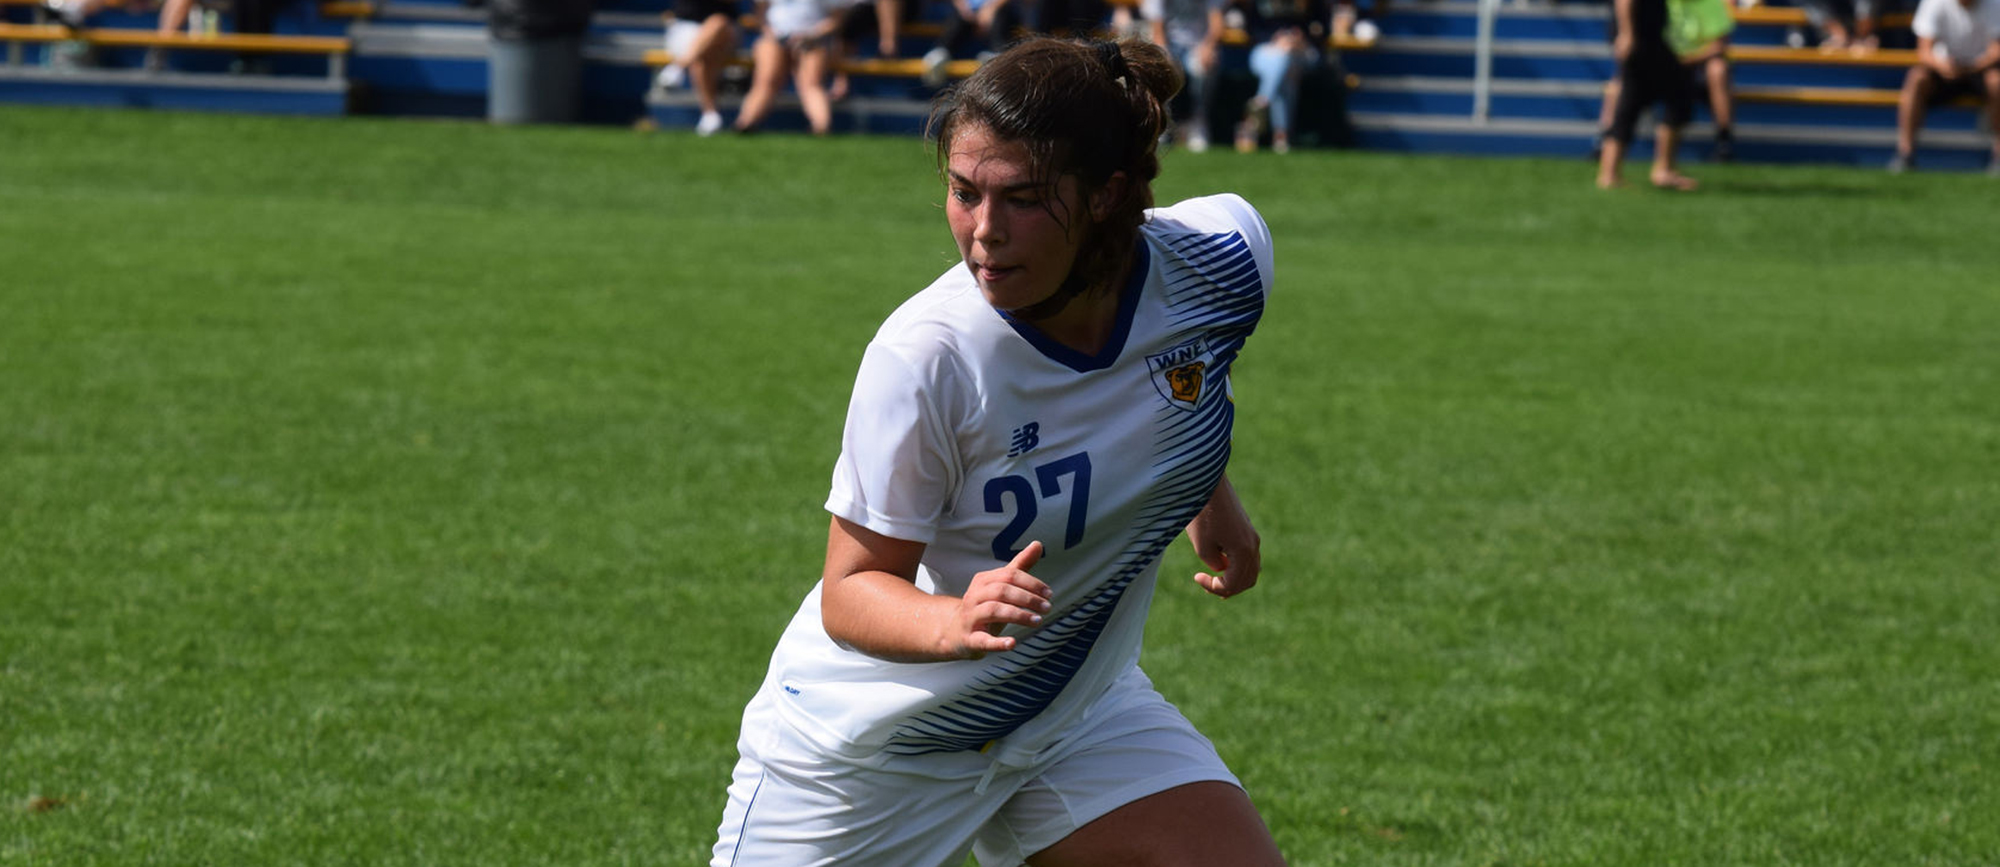 Sophomore Danielle Skates scored her first career goal in the 77th minute to cap Western New England's 3-2 comeback victory over Gordon on Saturday afternoon. (Photo by Rachael Margossian)